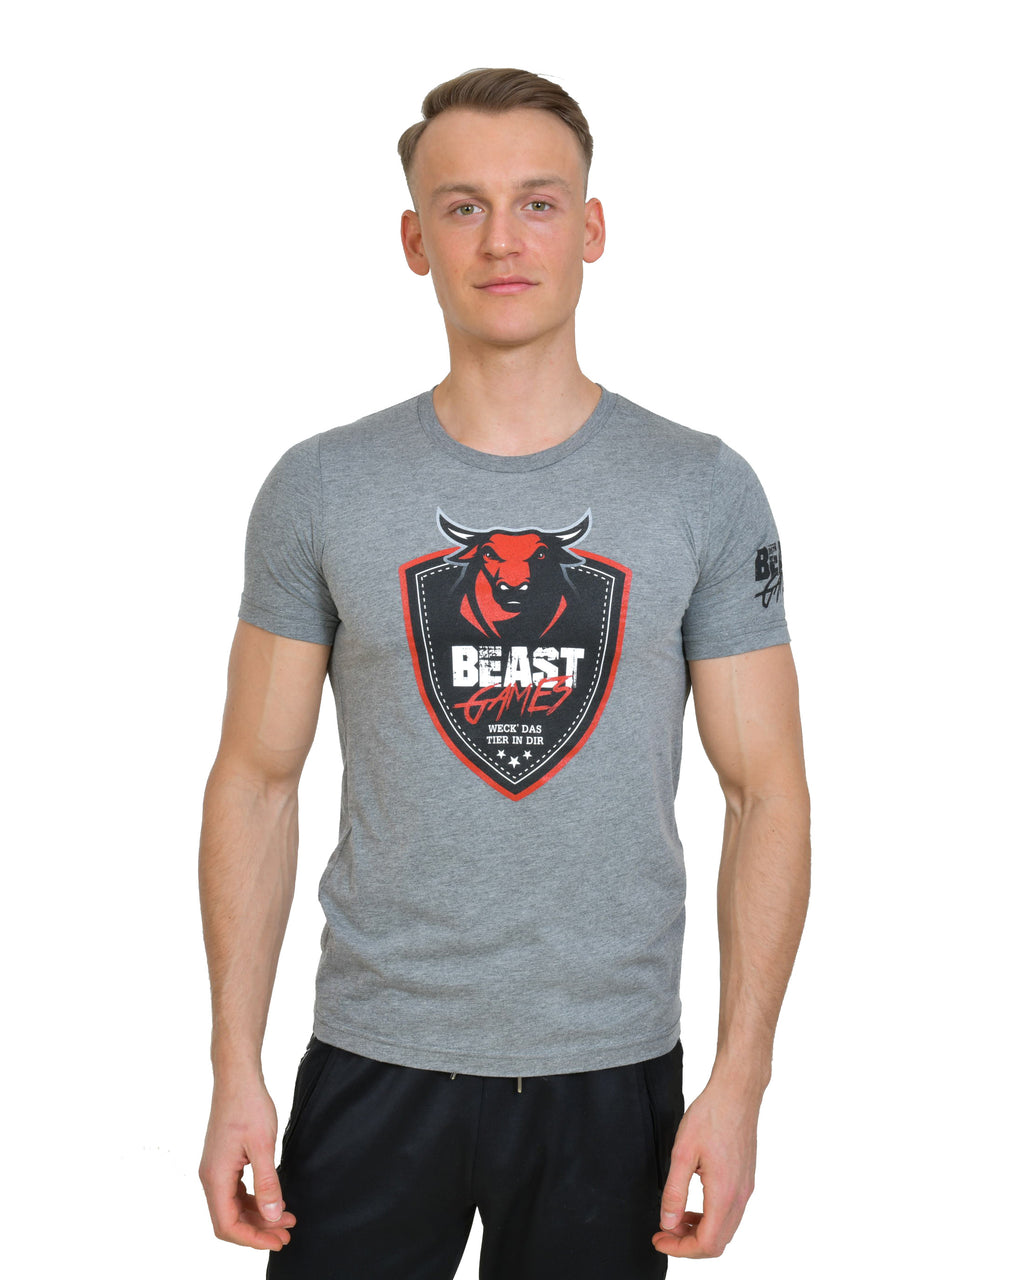 BEAST-Shirt | Das Original